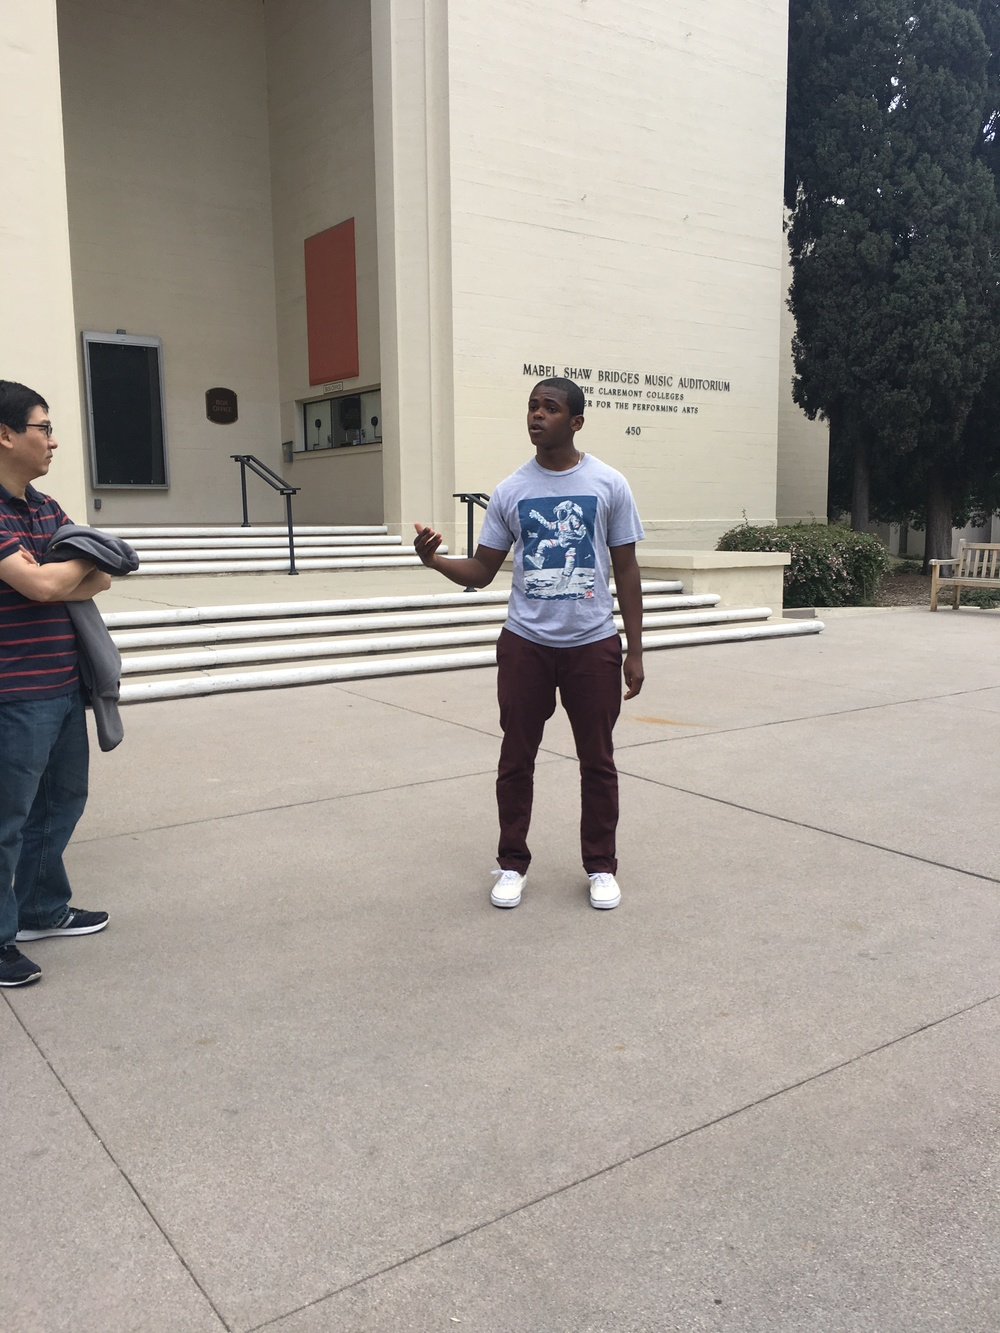 Our tour guide, a freshman at Pomona College